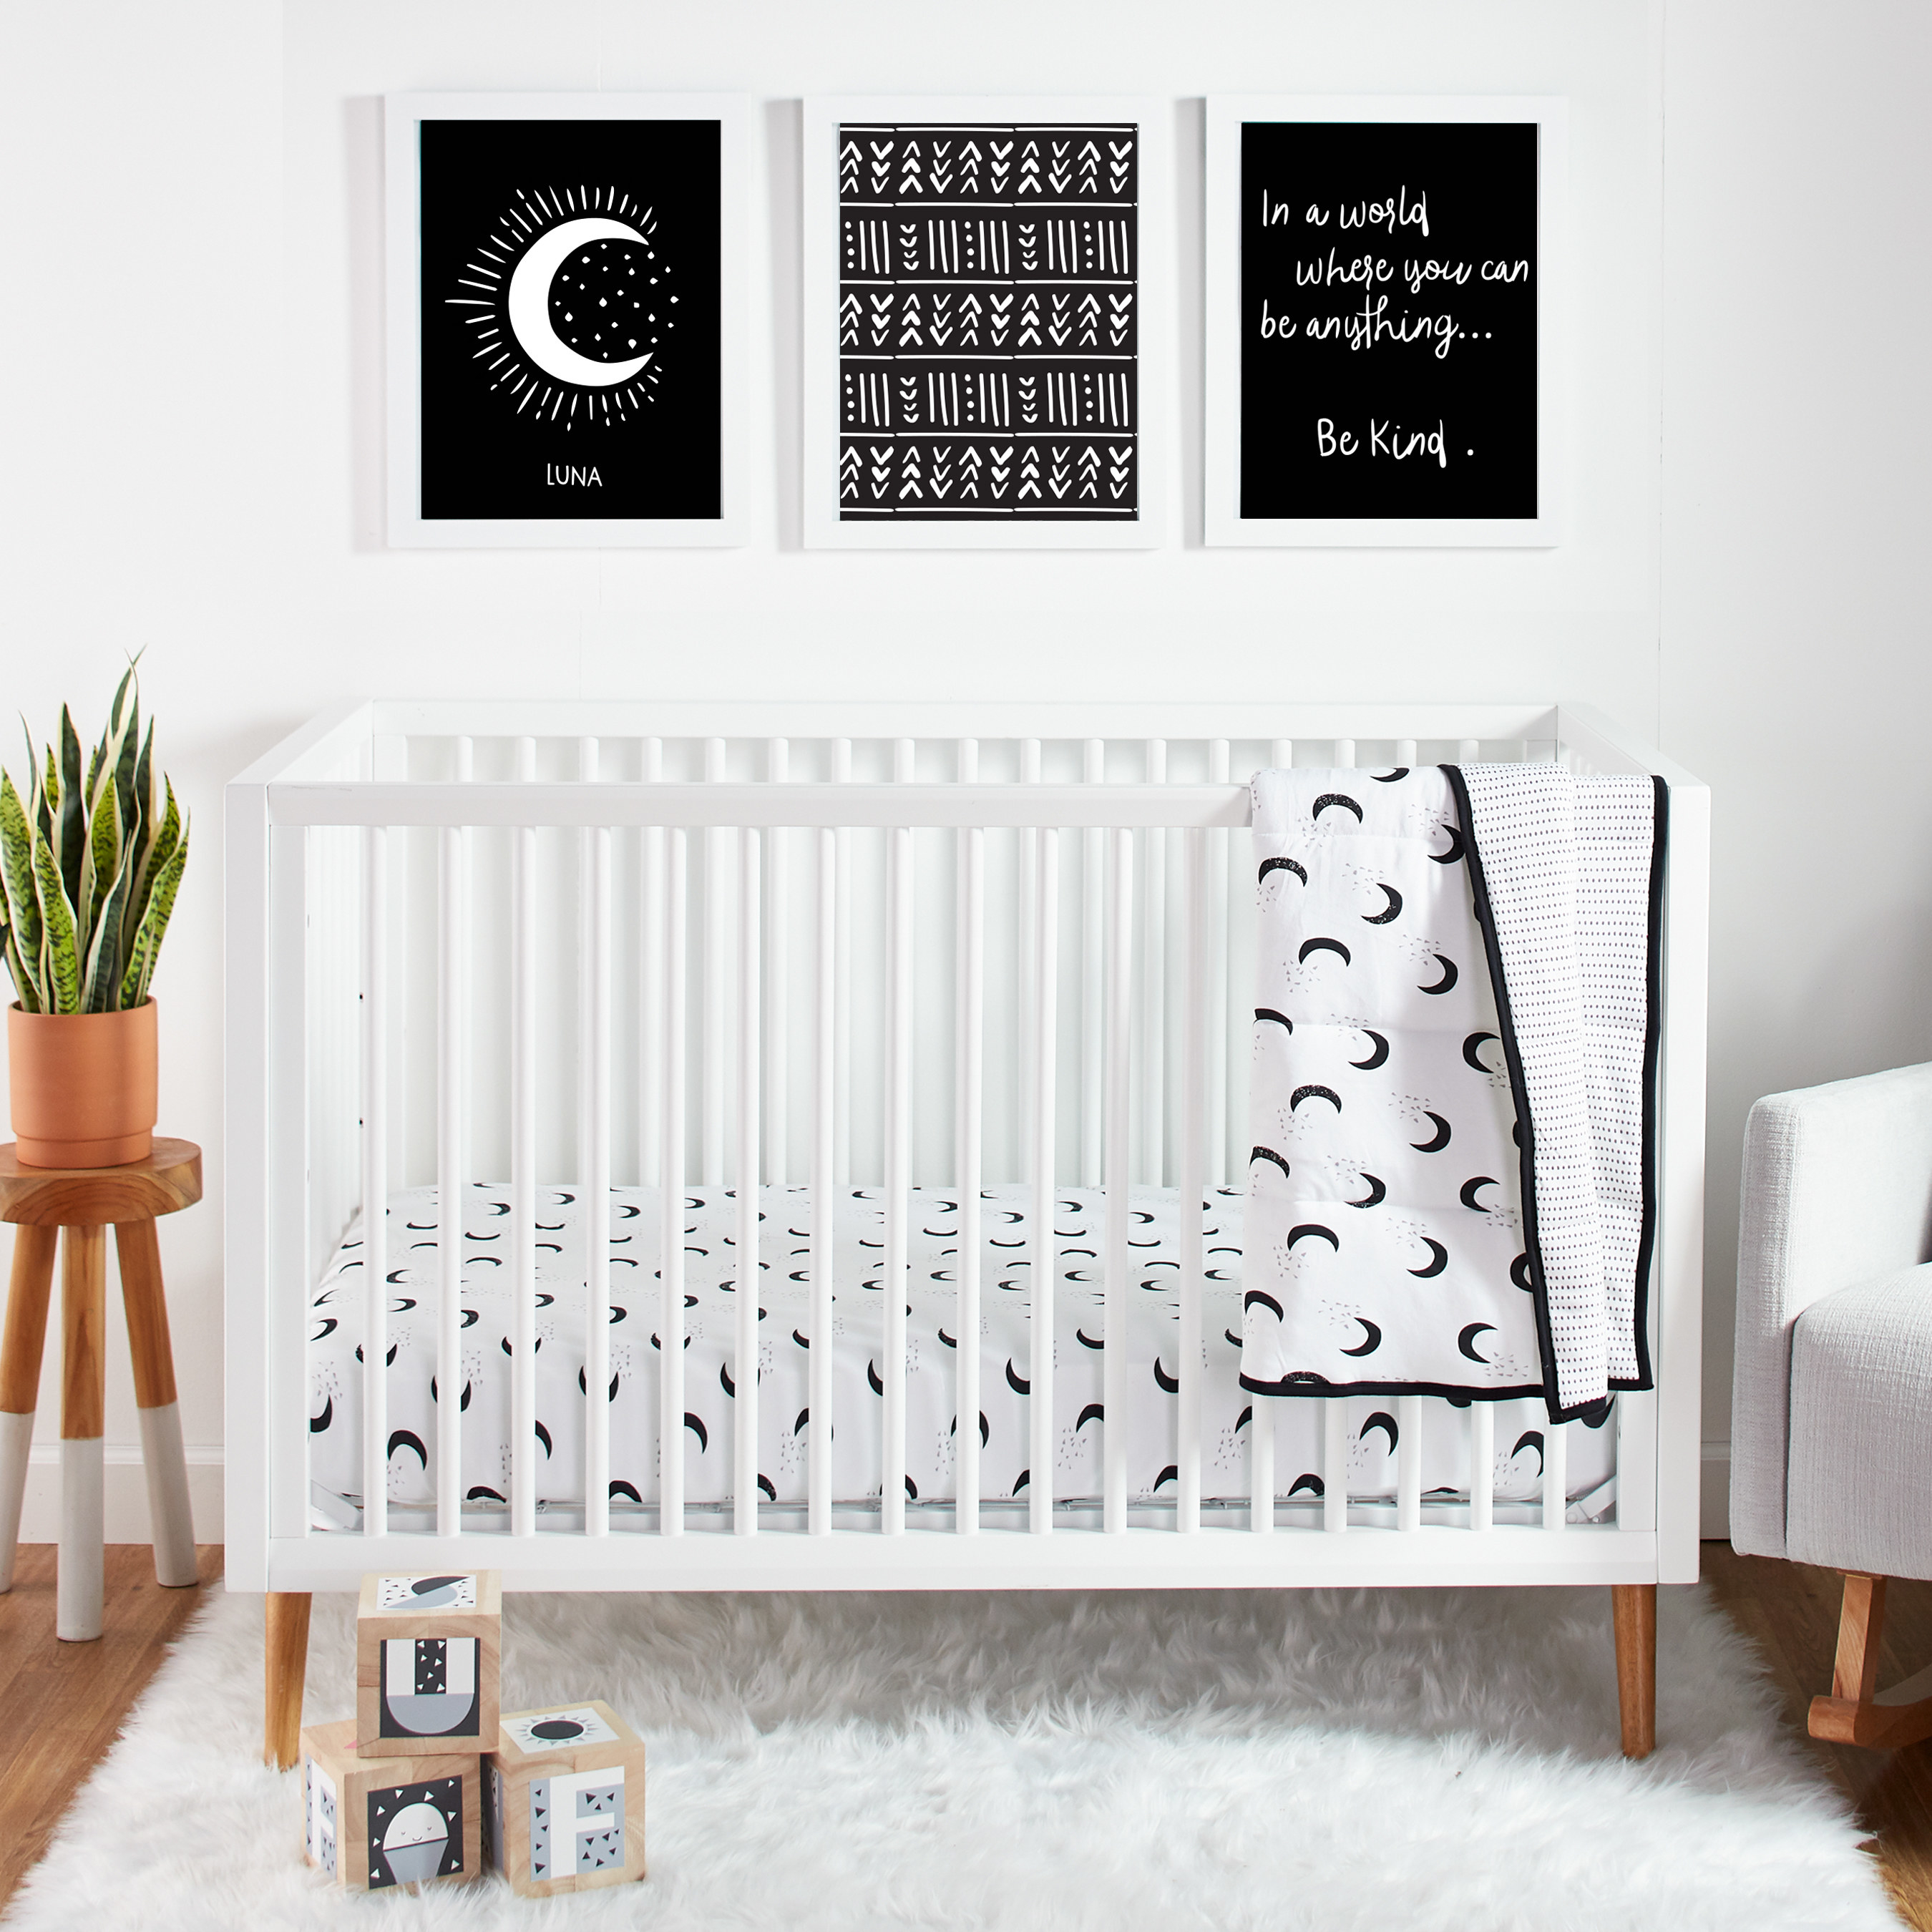 The black and white moon patterned set on a crib